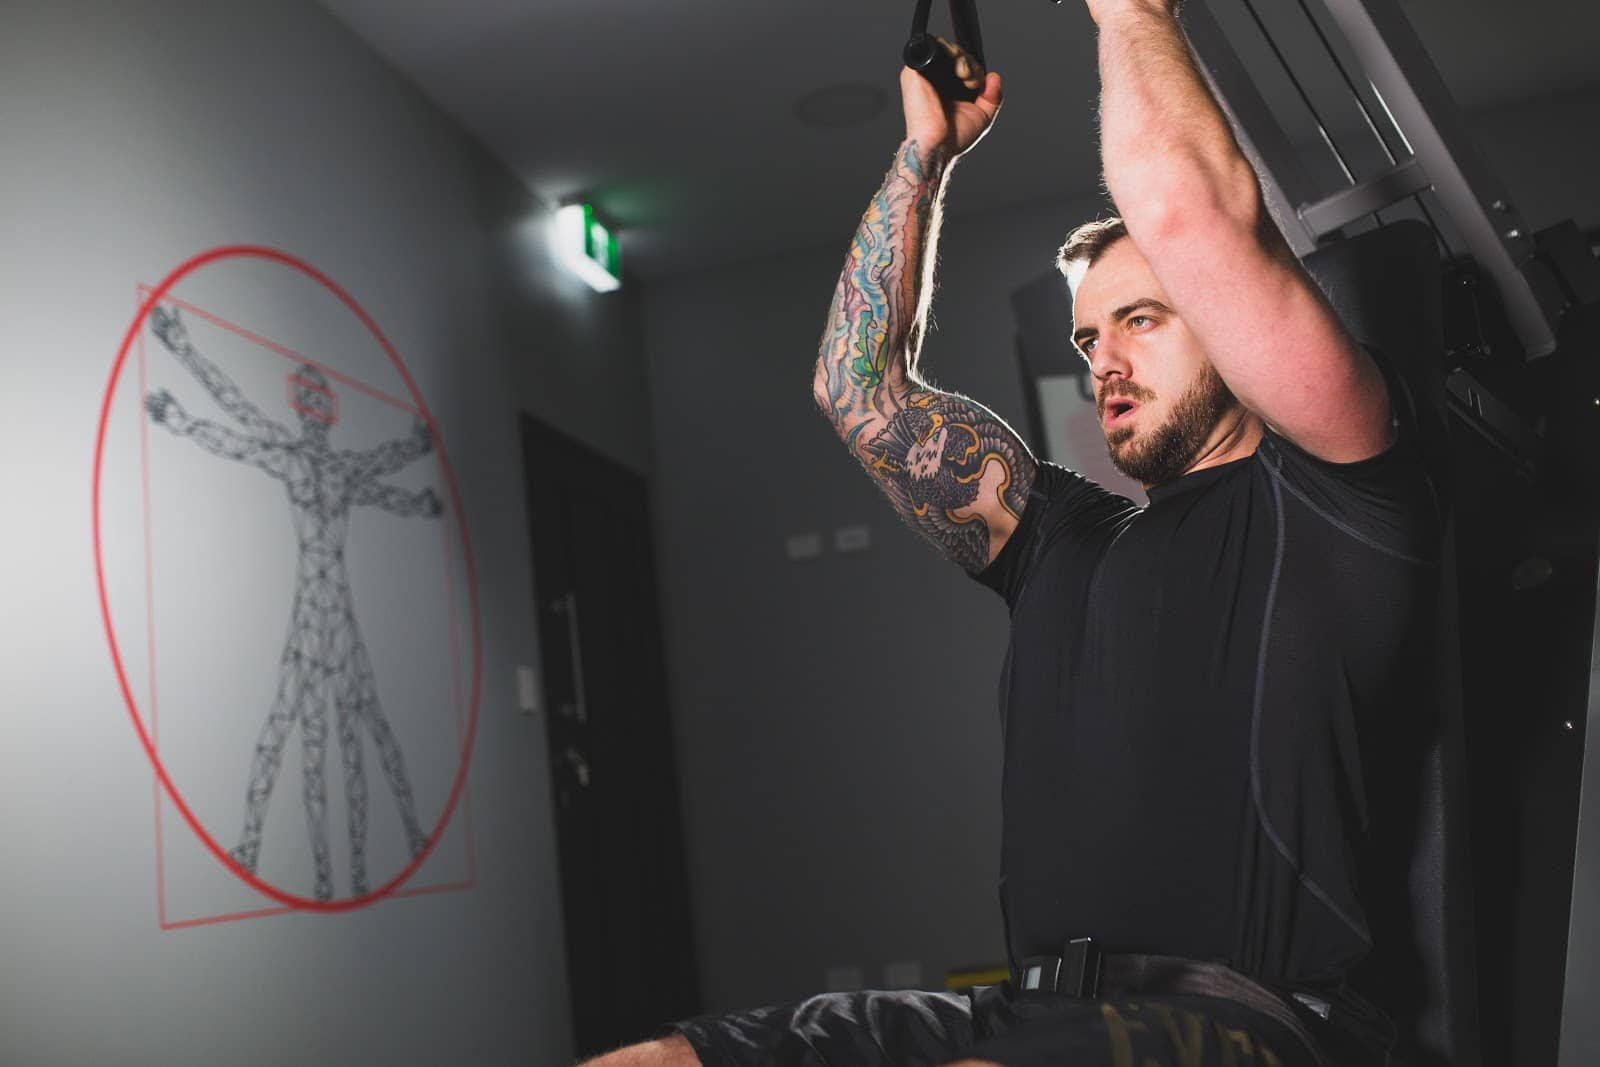 Intense Health Perth Personal Training and Nutrition - Sternght Training with ARX Fit Adaptive Resistance Exercise